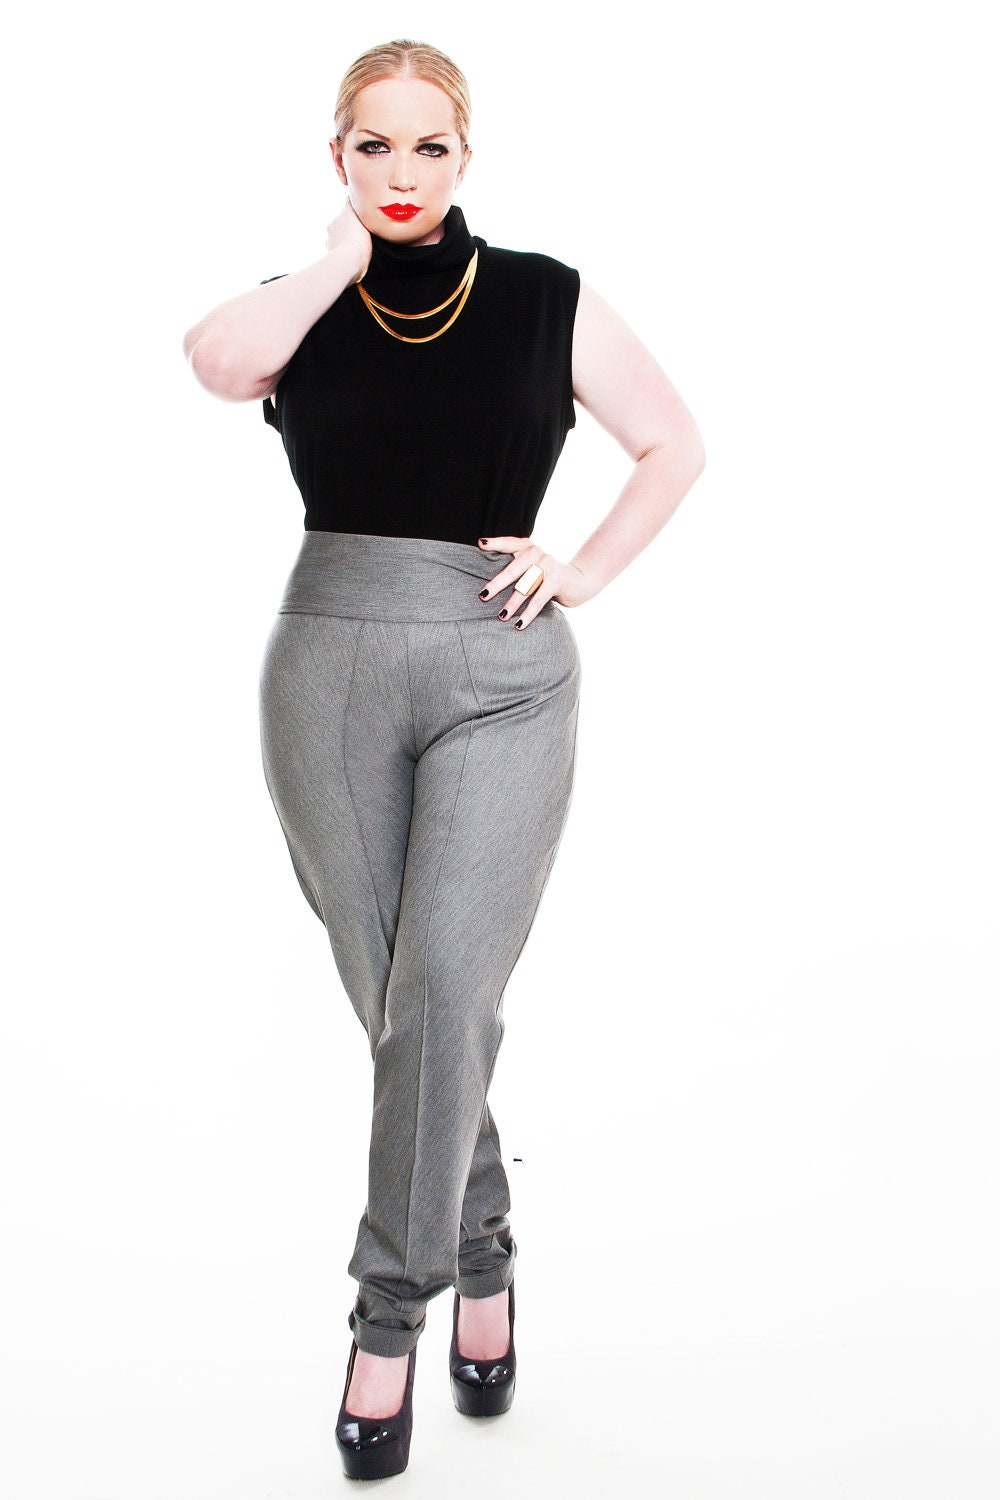 Women's Plus Size Pants: Sizes We know you're looking for plus size pants that are one part chic one part polished and comfy no matter what. That said we've got your perfect pair! Play with prints in our palazzo and soft pants or find plus size dress pants from trousers to skinny pants that are office-approved. Is the perfect fit.